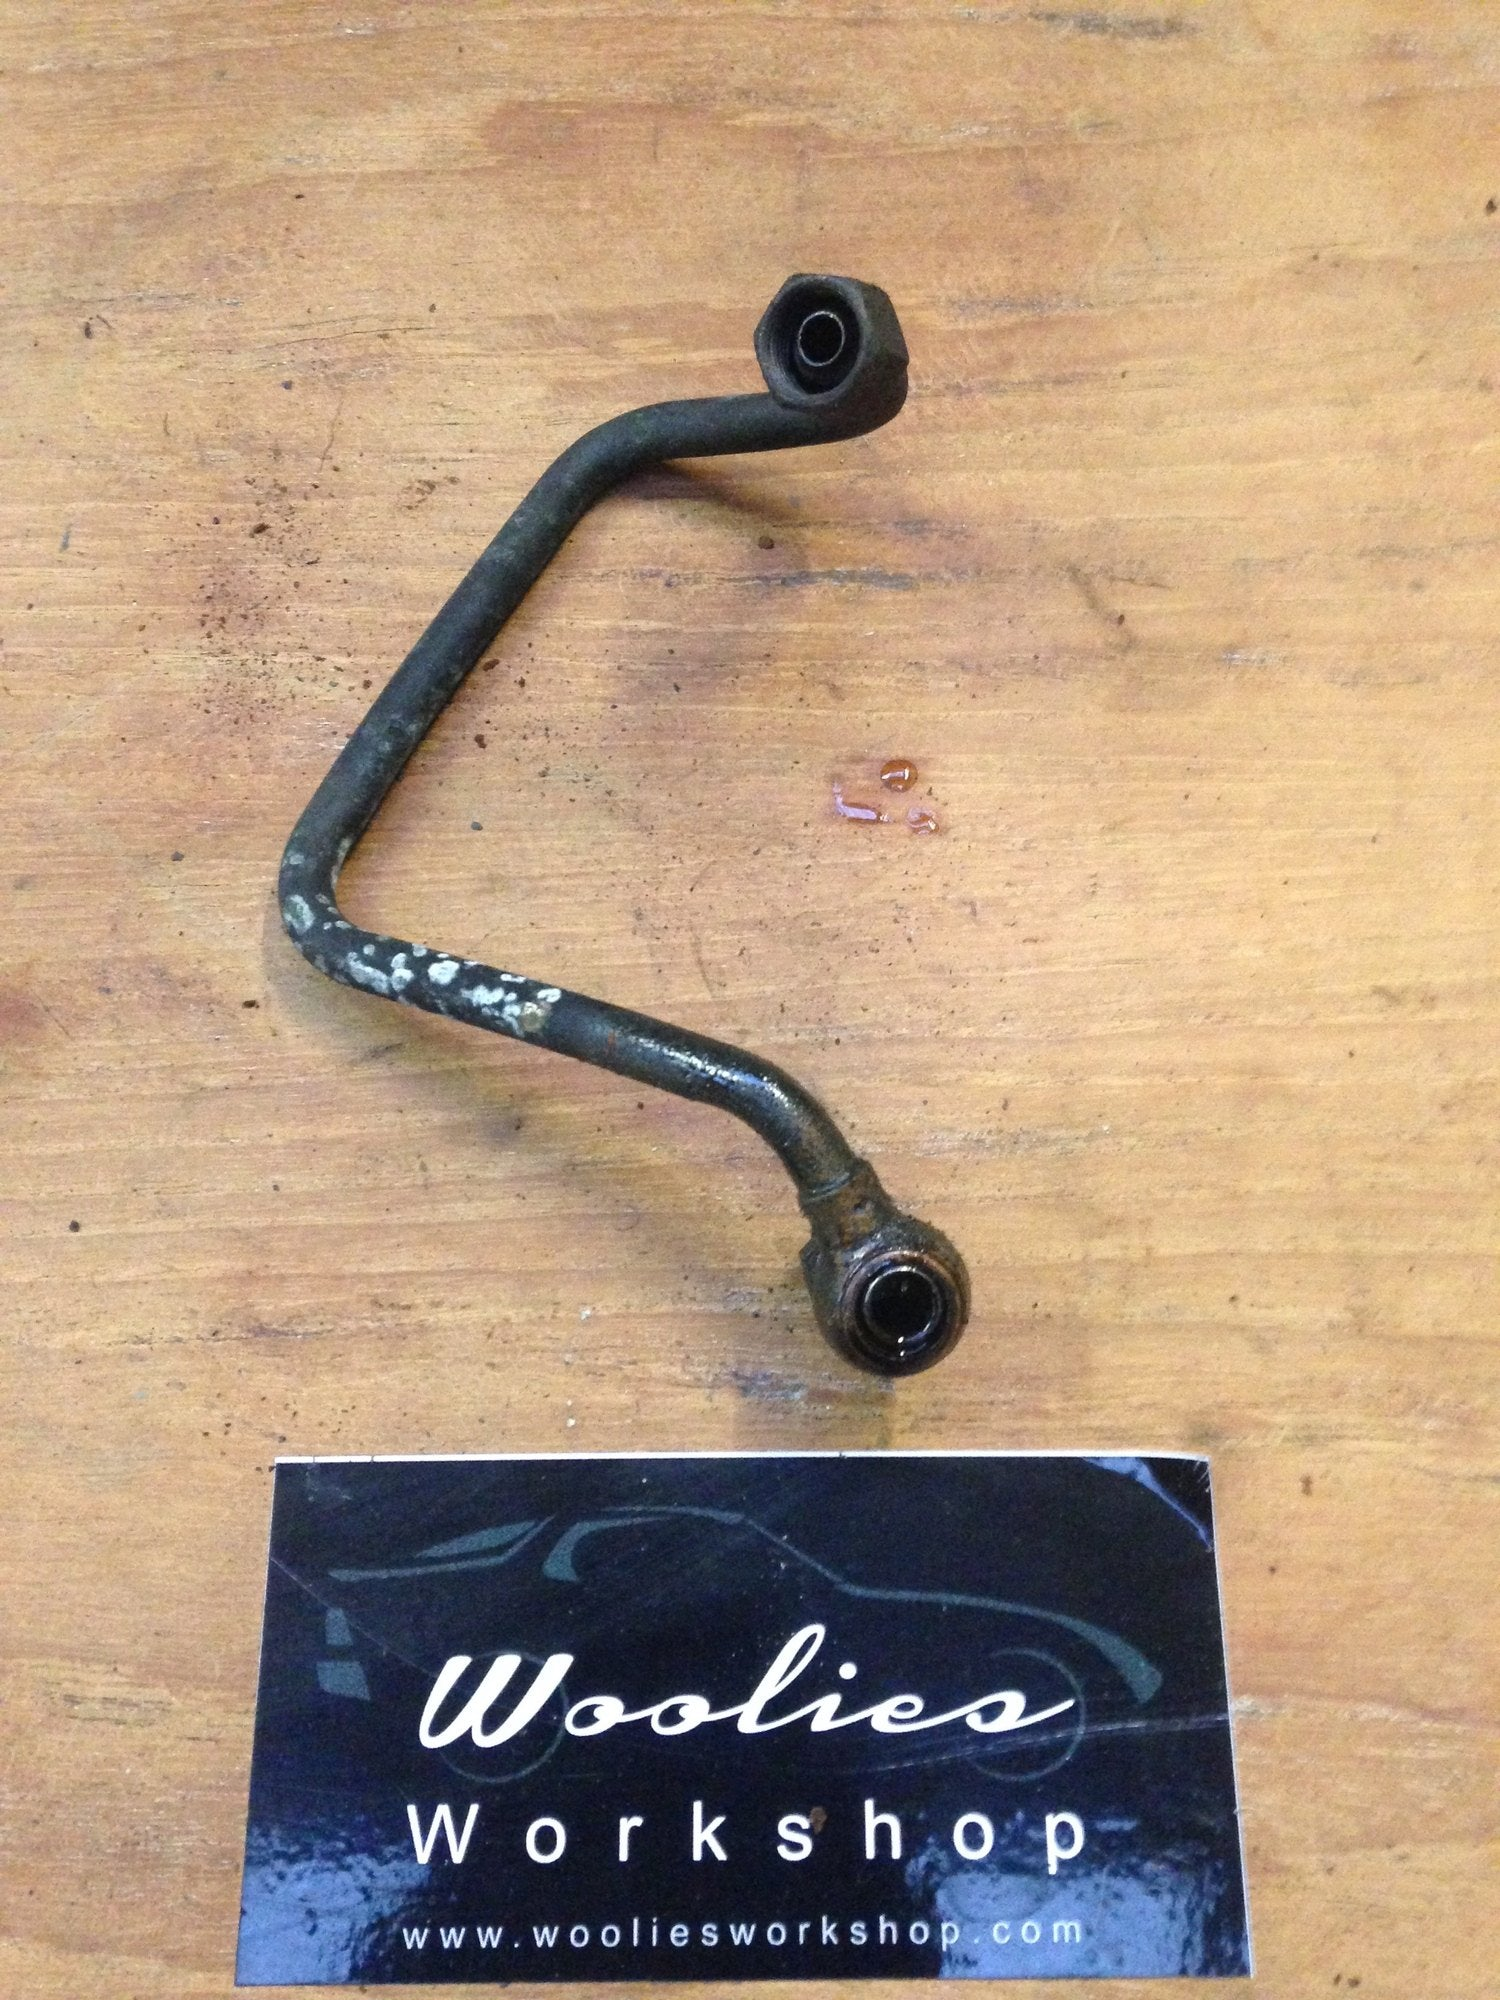 Porsche 924 turbo oil feed pipe 931 107 109 05 - Woolies Workshop - Porsche 924 944 spares